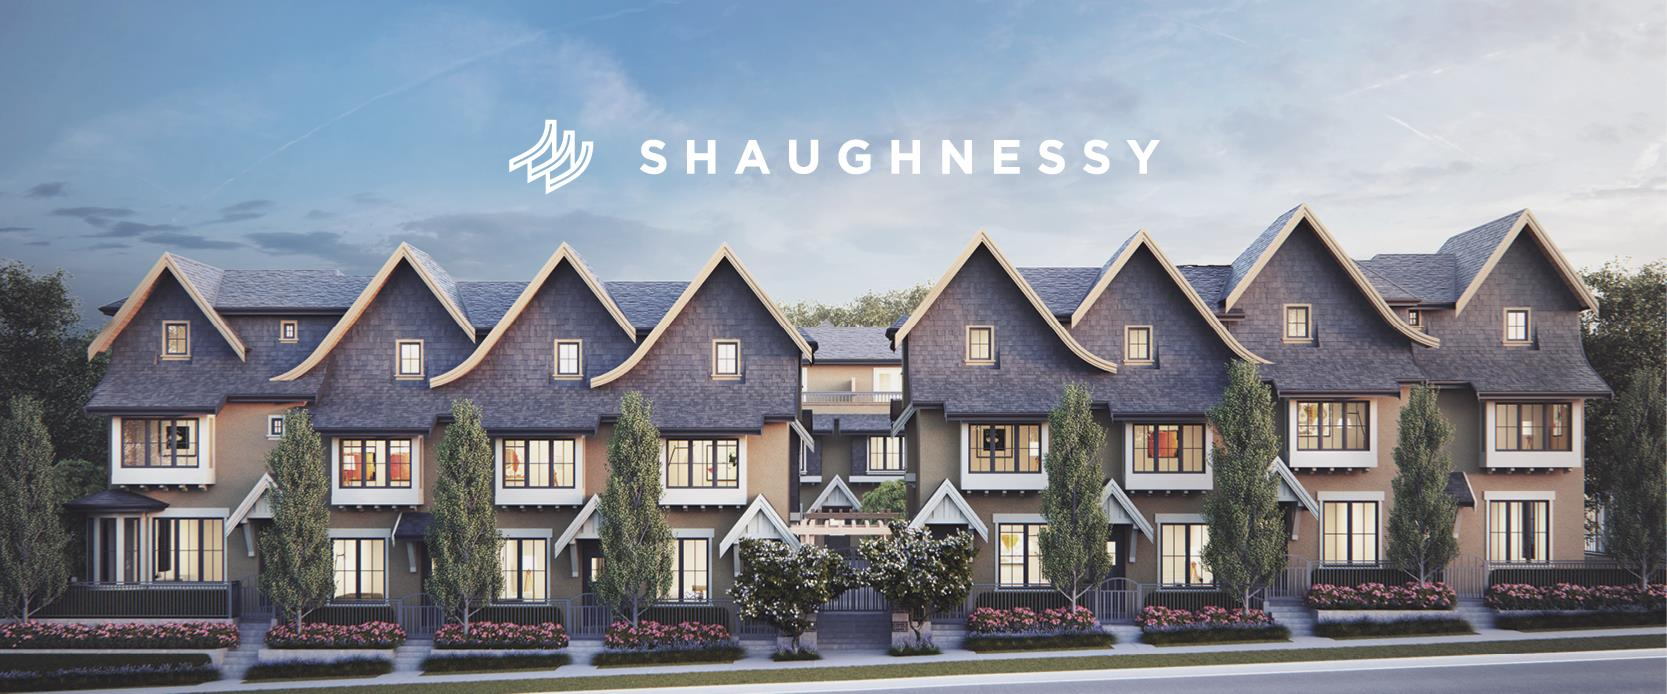 Shaughnessy Residences – 3- & 4-Bedroom Pre-Construction Marpole Townhomes By Alabaster